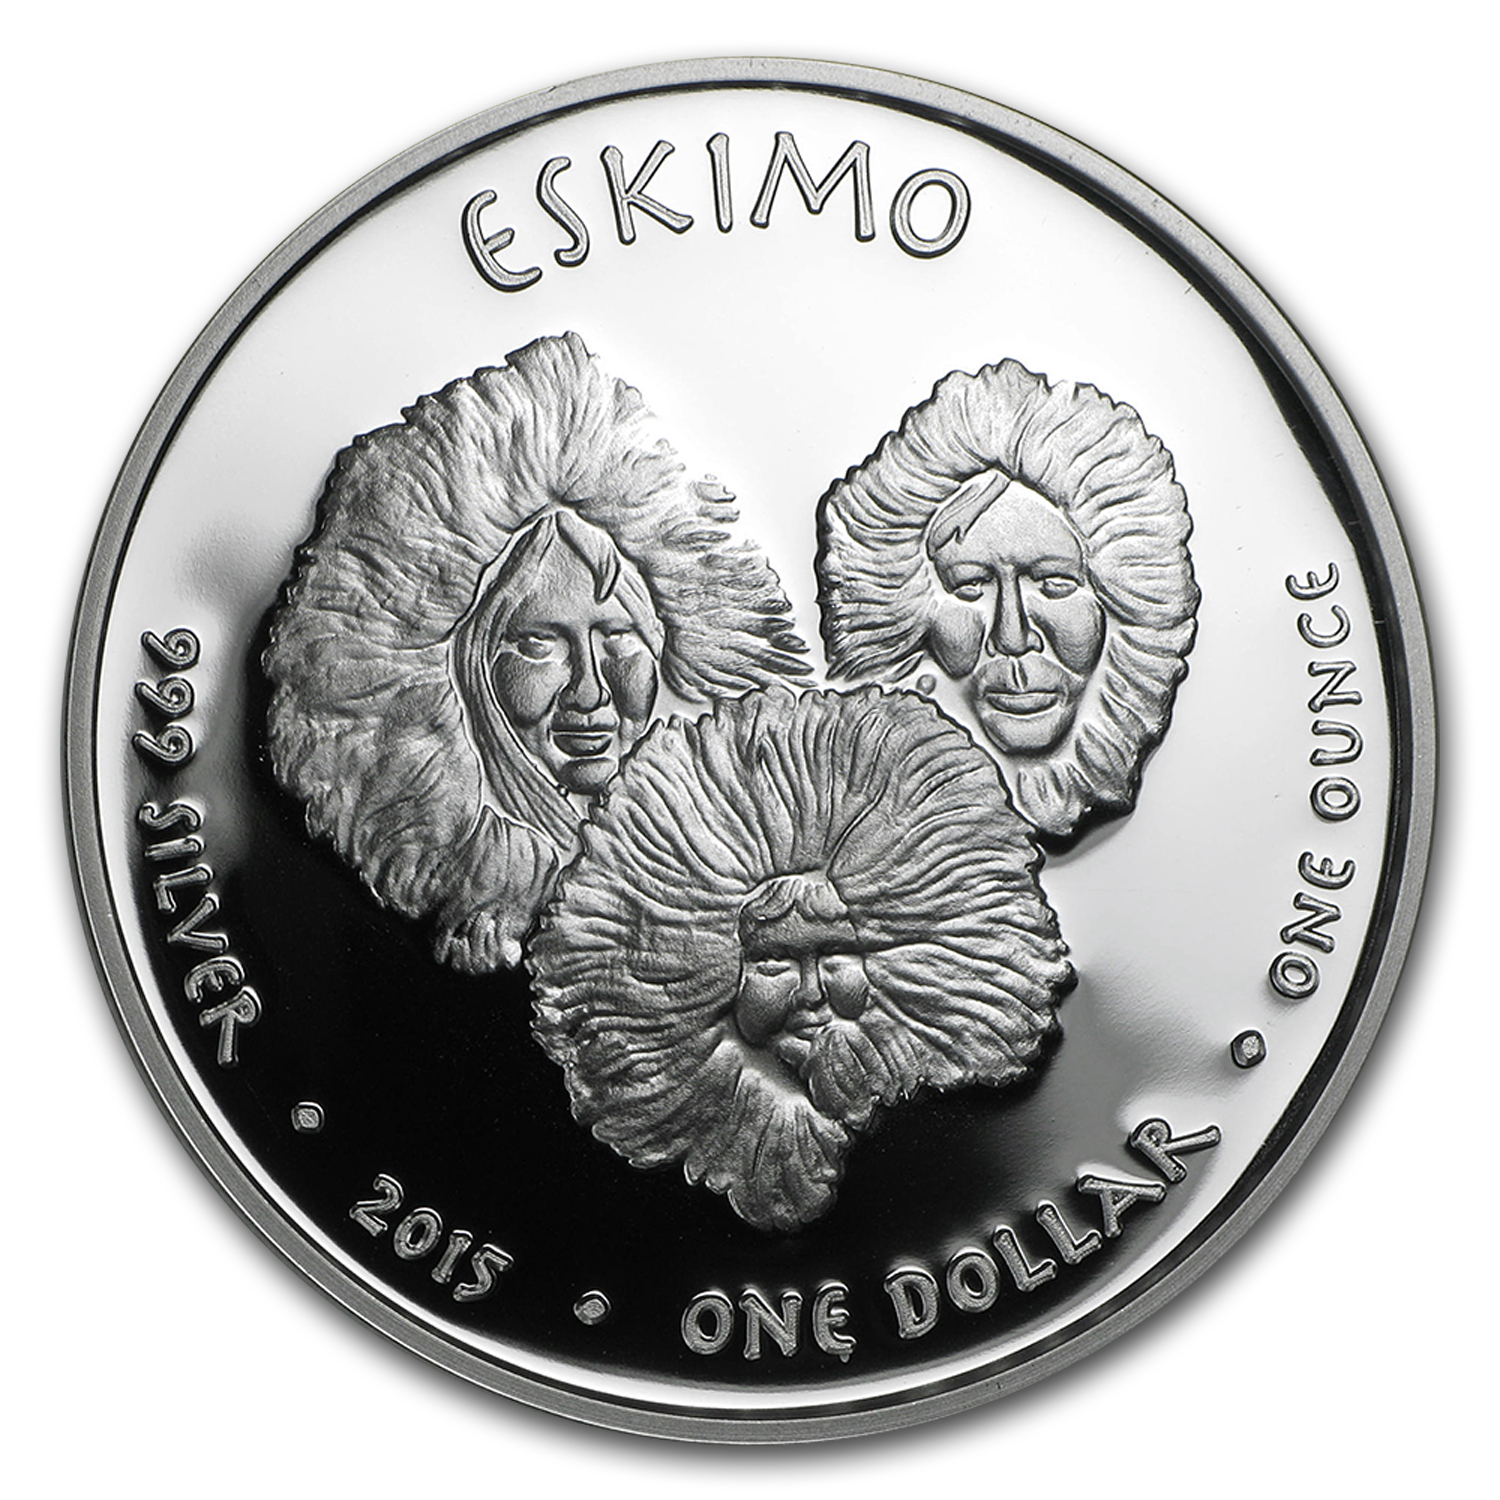 2015 1 oz Silver Proof State Dollars Alaska Eskimo